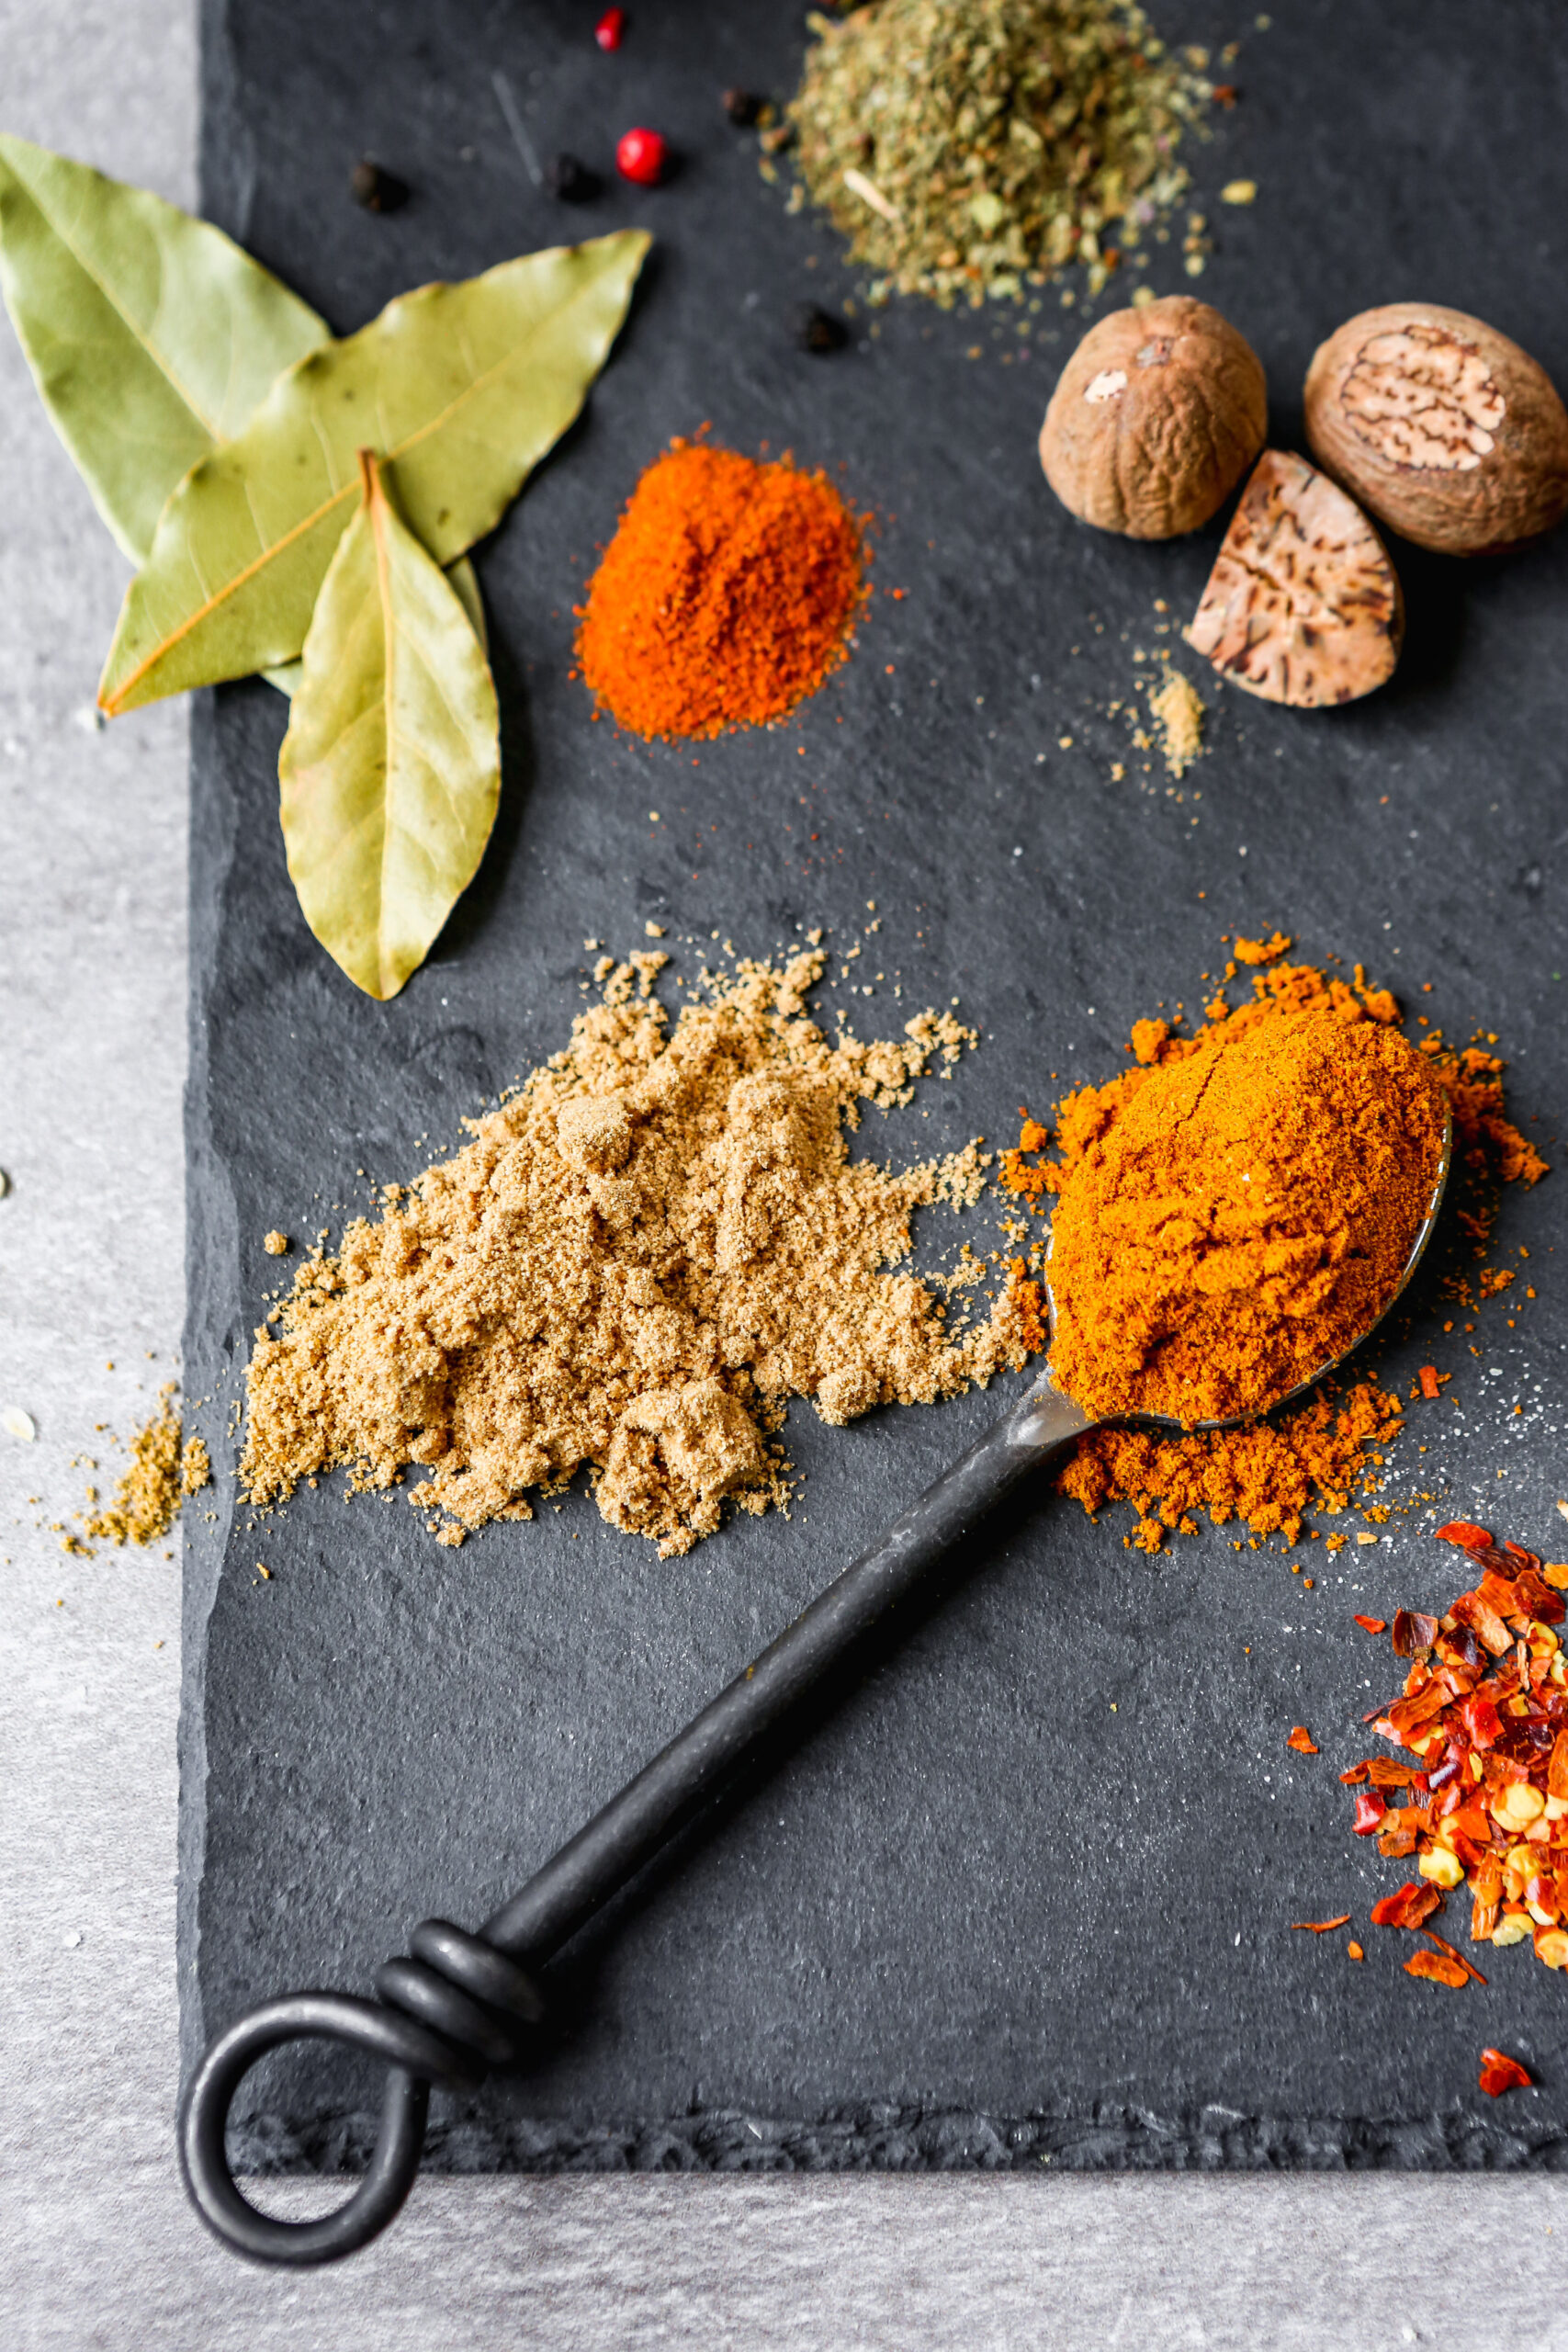 vibrant piles of colorful spices arranges on a black slate plate.